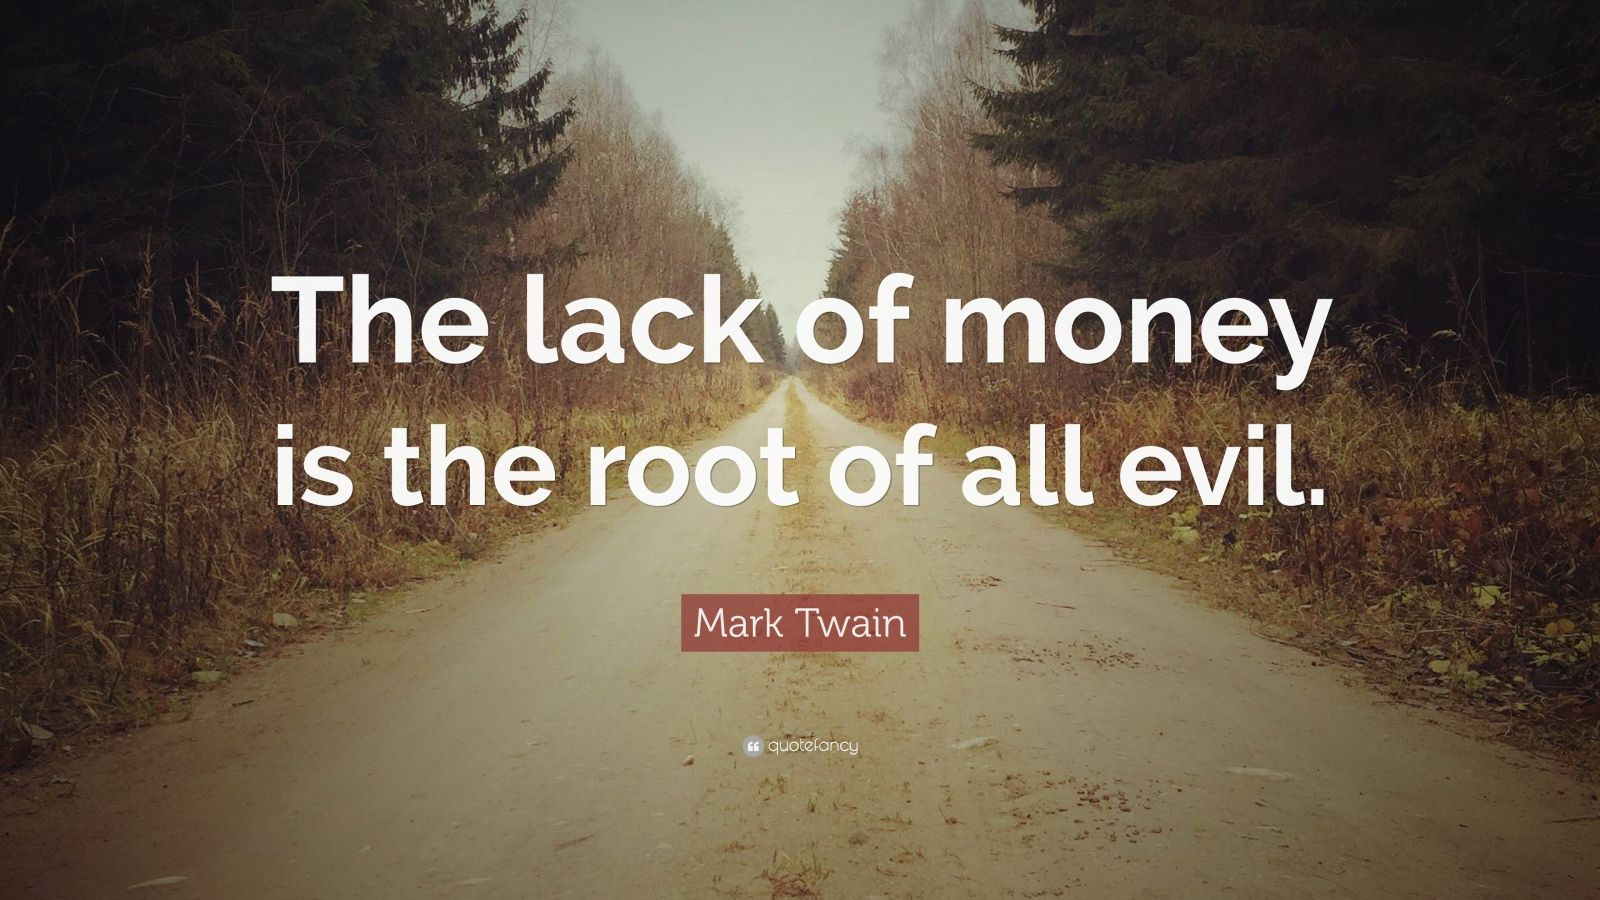 for the love of money is the root of all evil essay So imagine my surprise when reading his blog the other day that his opening line stated, the love of money is the root of all evil the first word out of my mouth was 'wow' because i could barely believe his take on the subject.